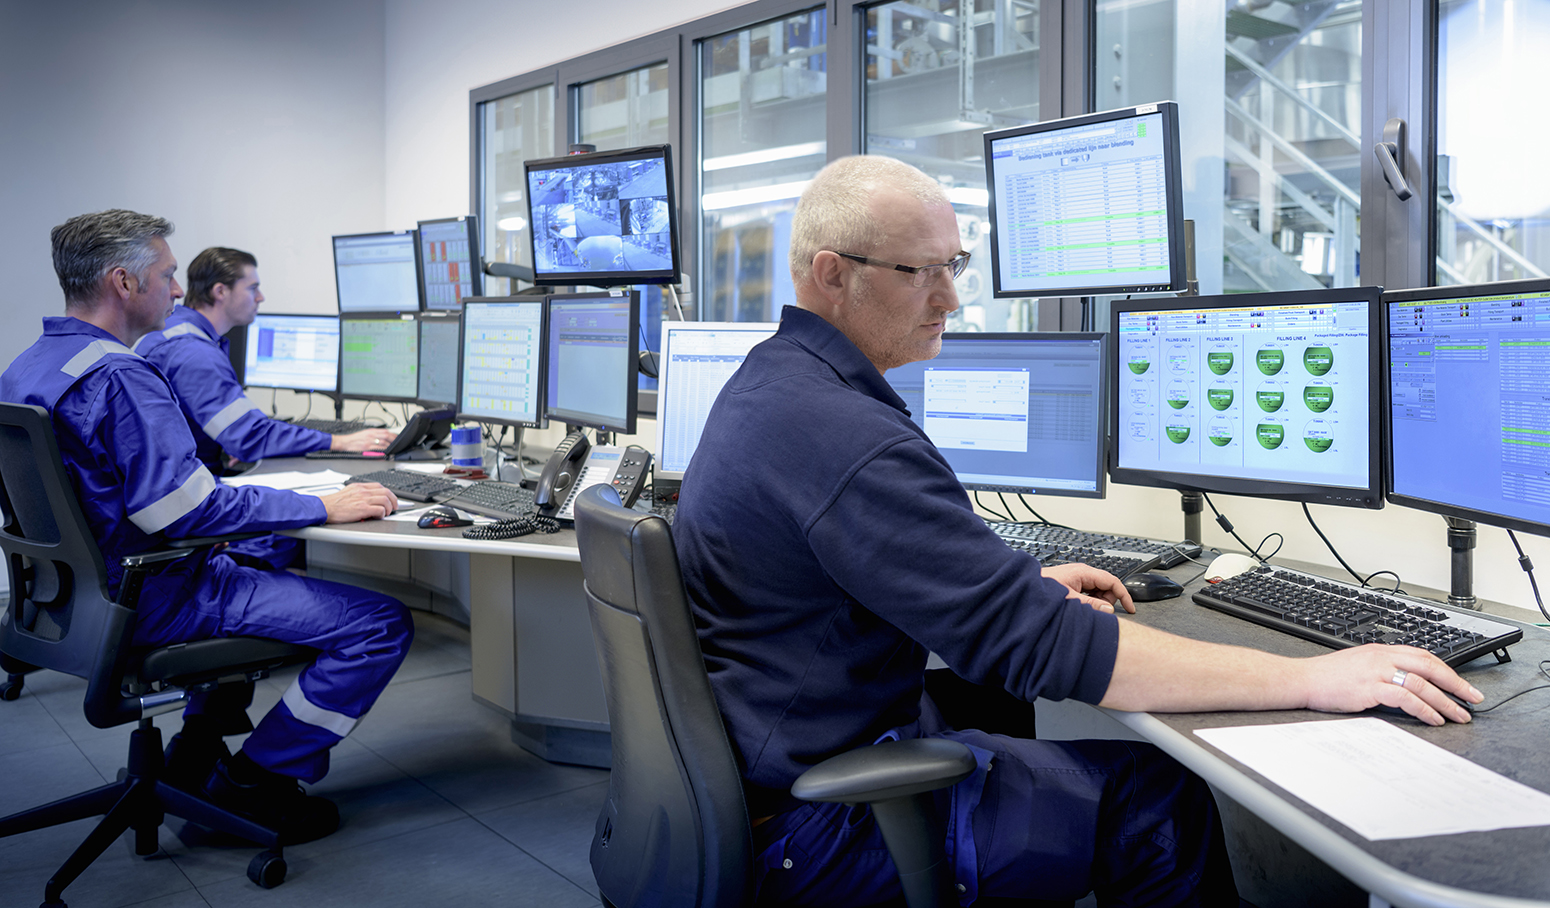 Workers in a control room surrounded by computer monitors.